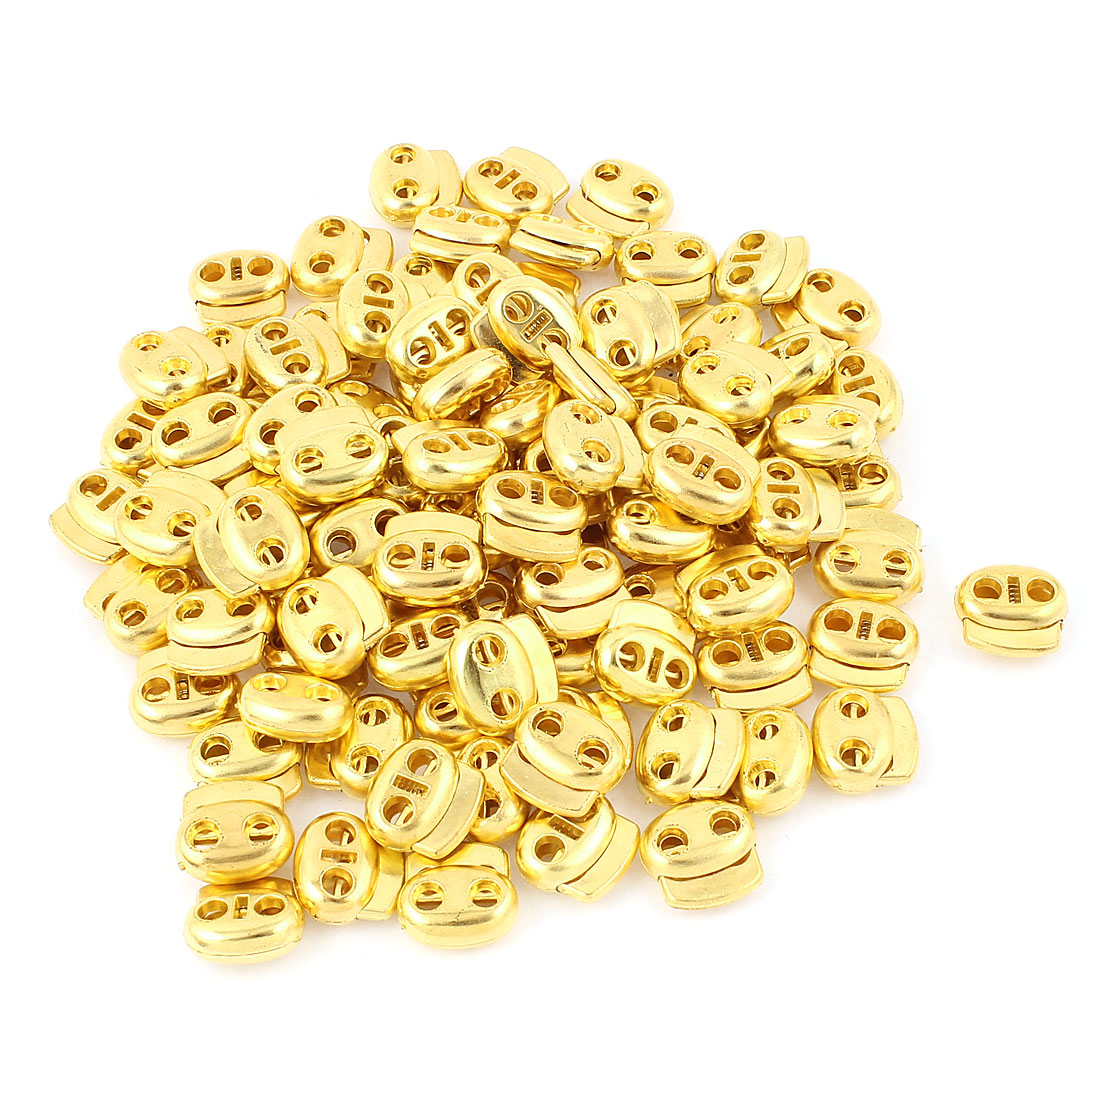 100 Pcs Dual Holes Cord Lock Stopper Toggles Spring Adjuster Fastener Gold Tone